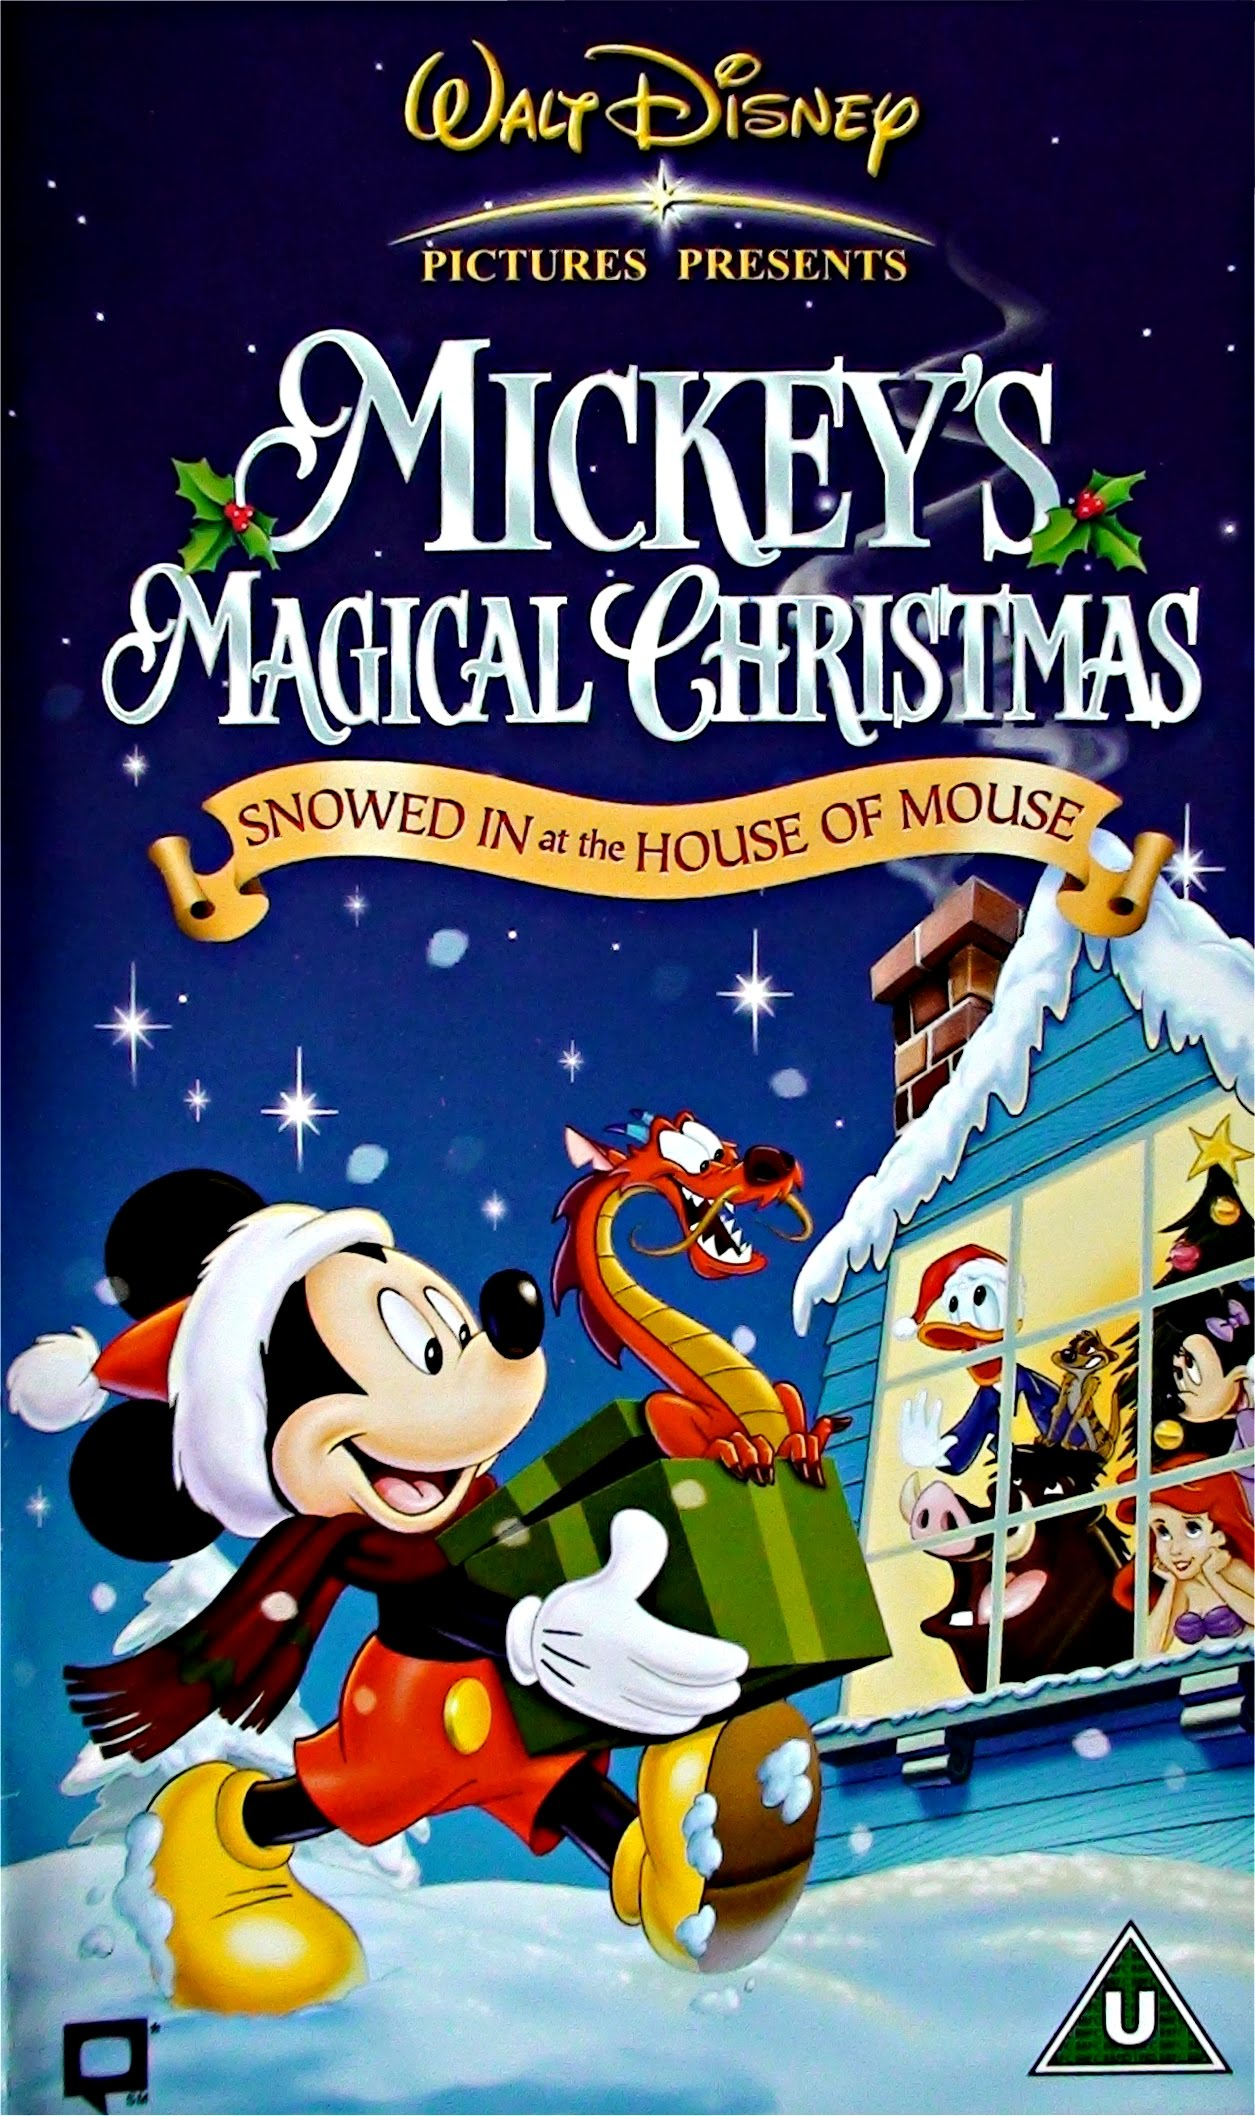 maxresdefault - Youtube Mickey Mouse Christmas